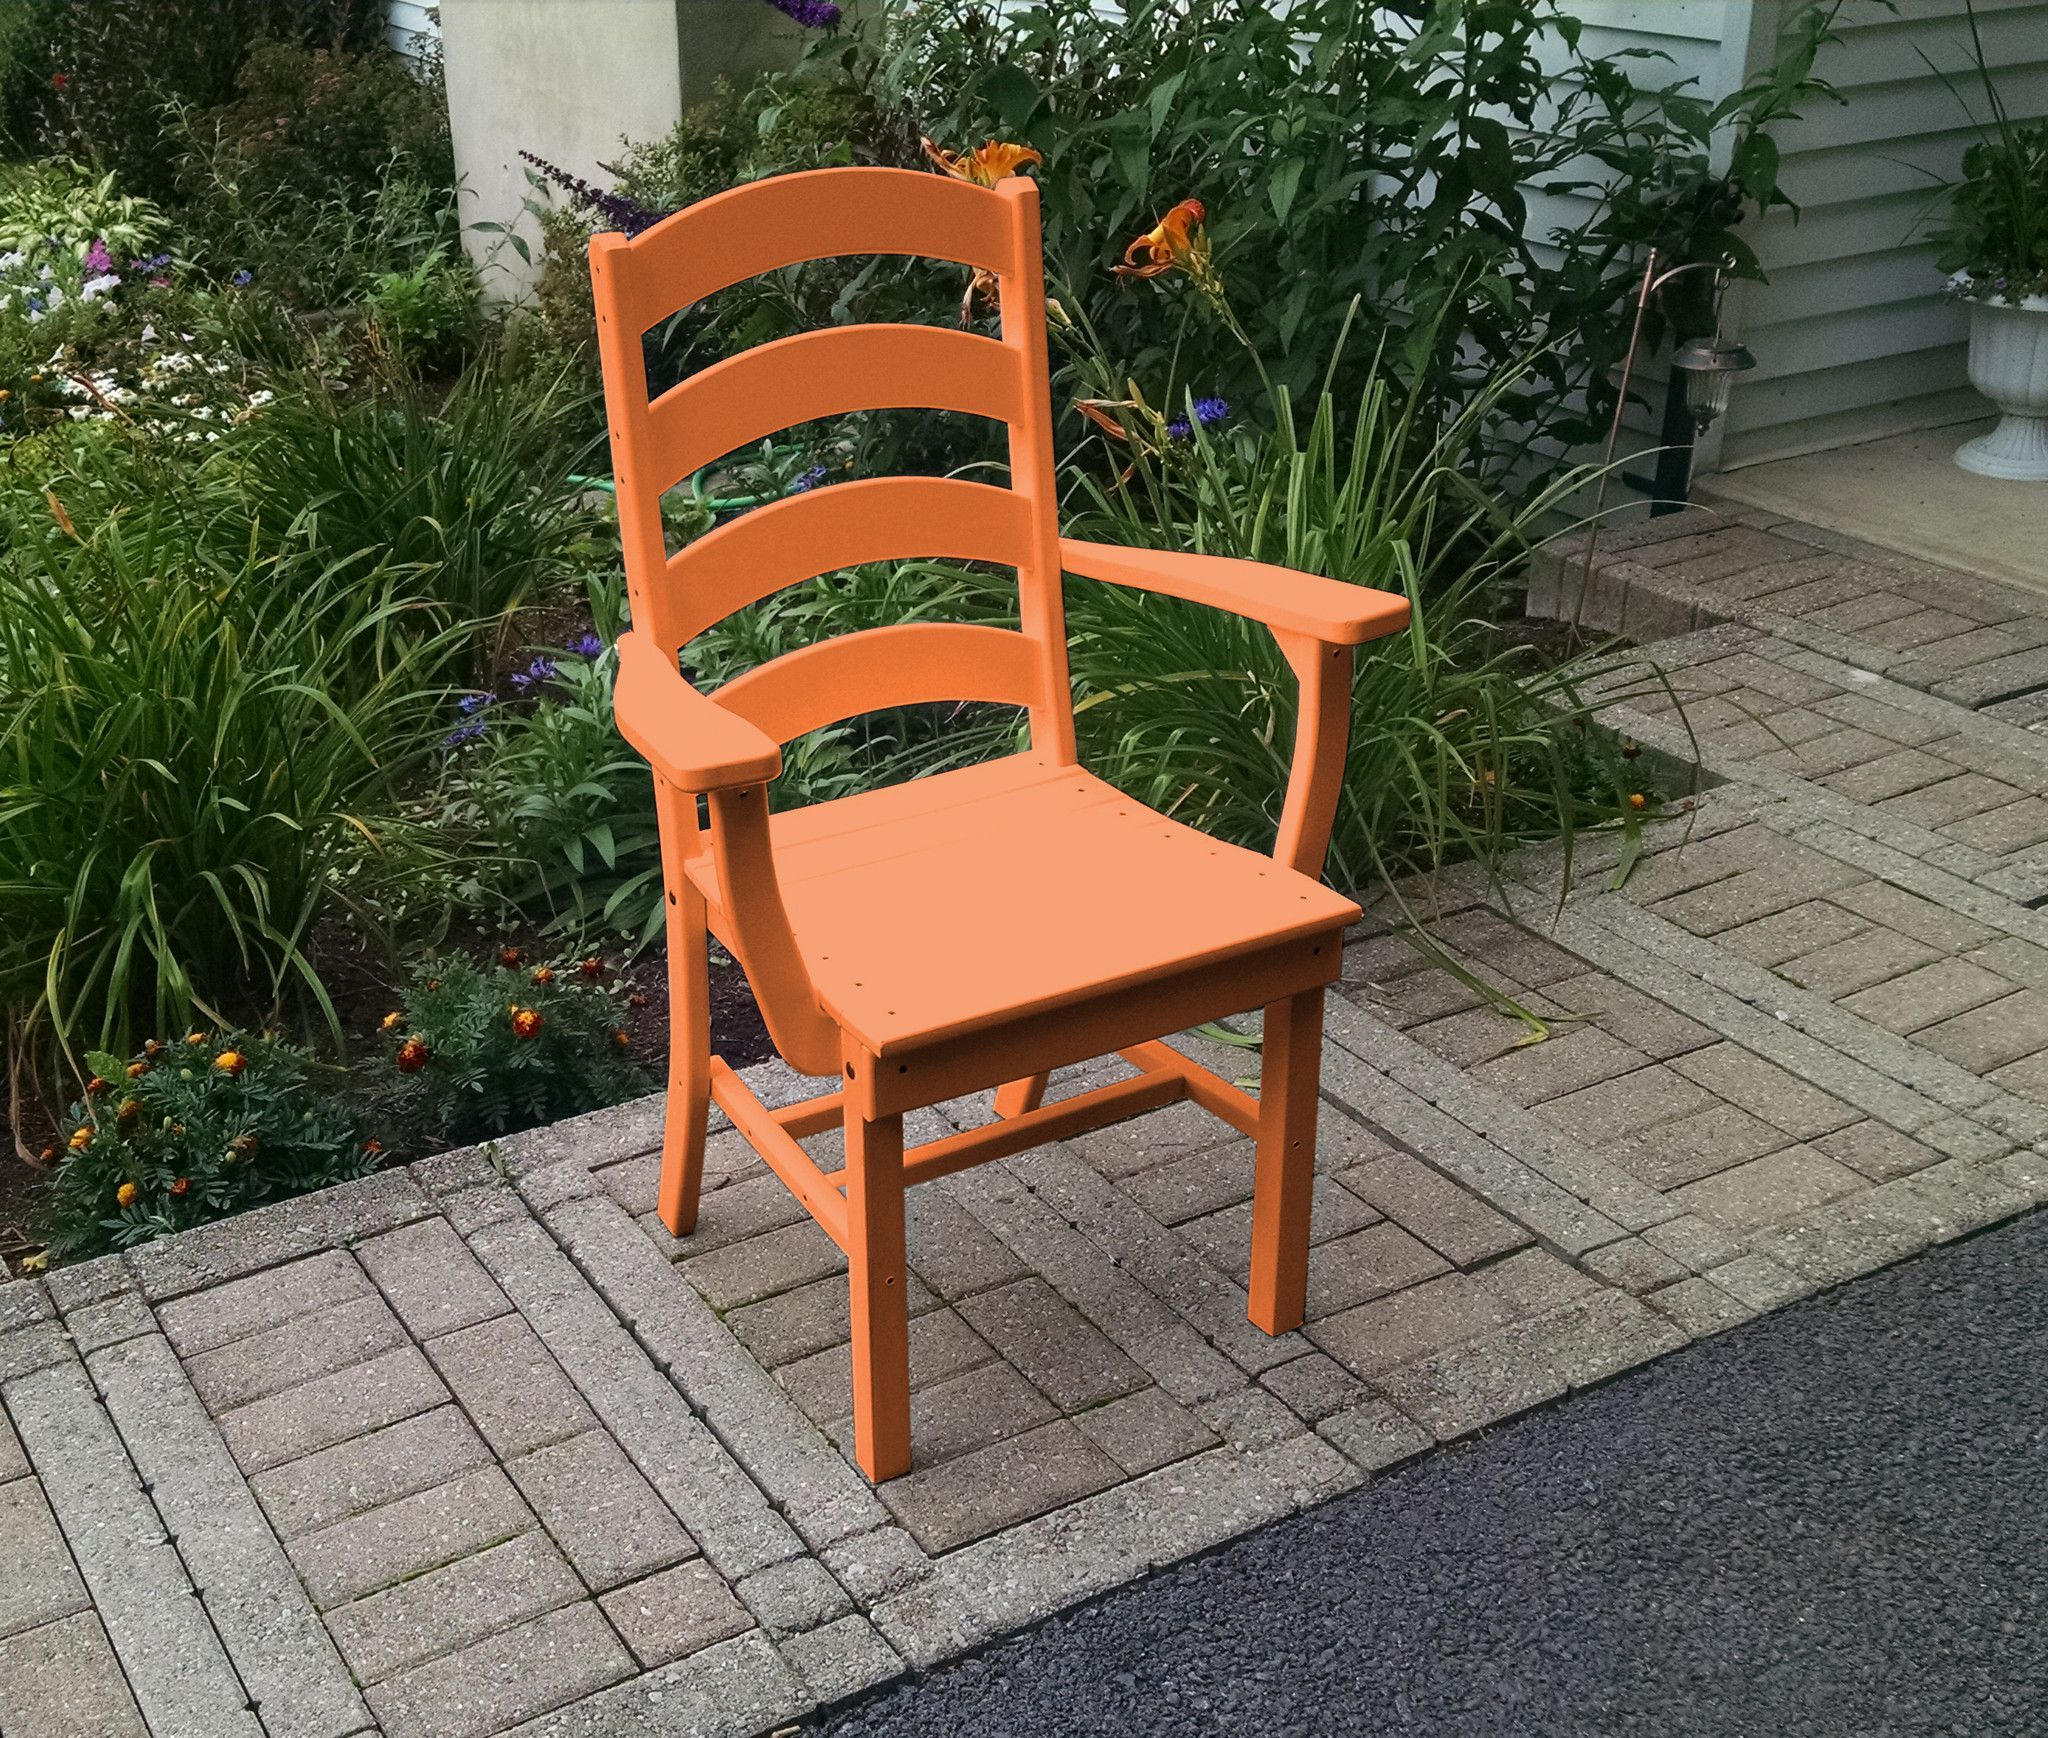 A&L Furniture pany Recycled Plastic Ladderback Dining Chair w